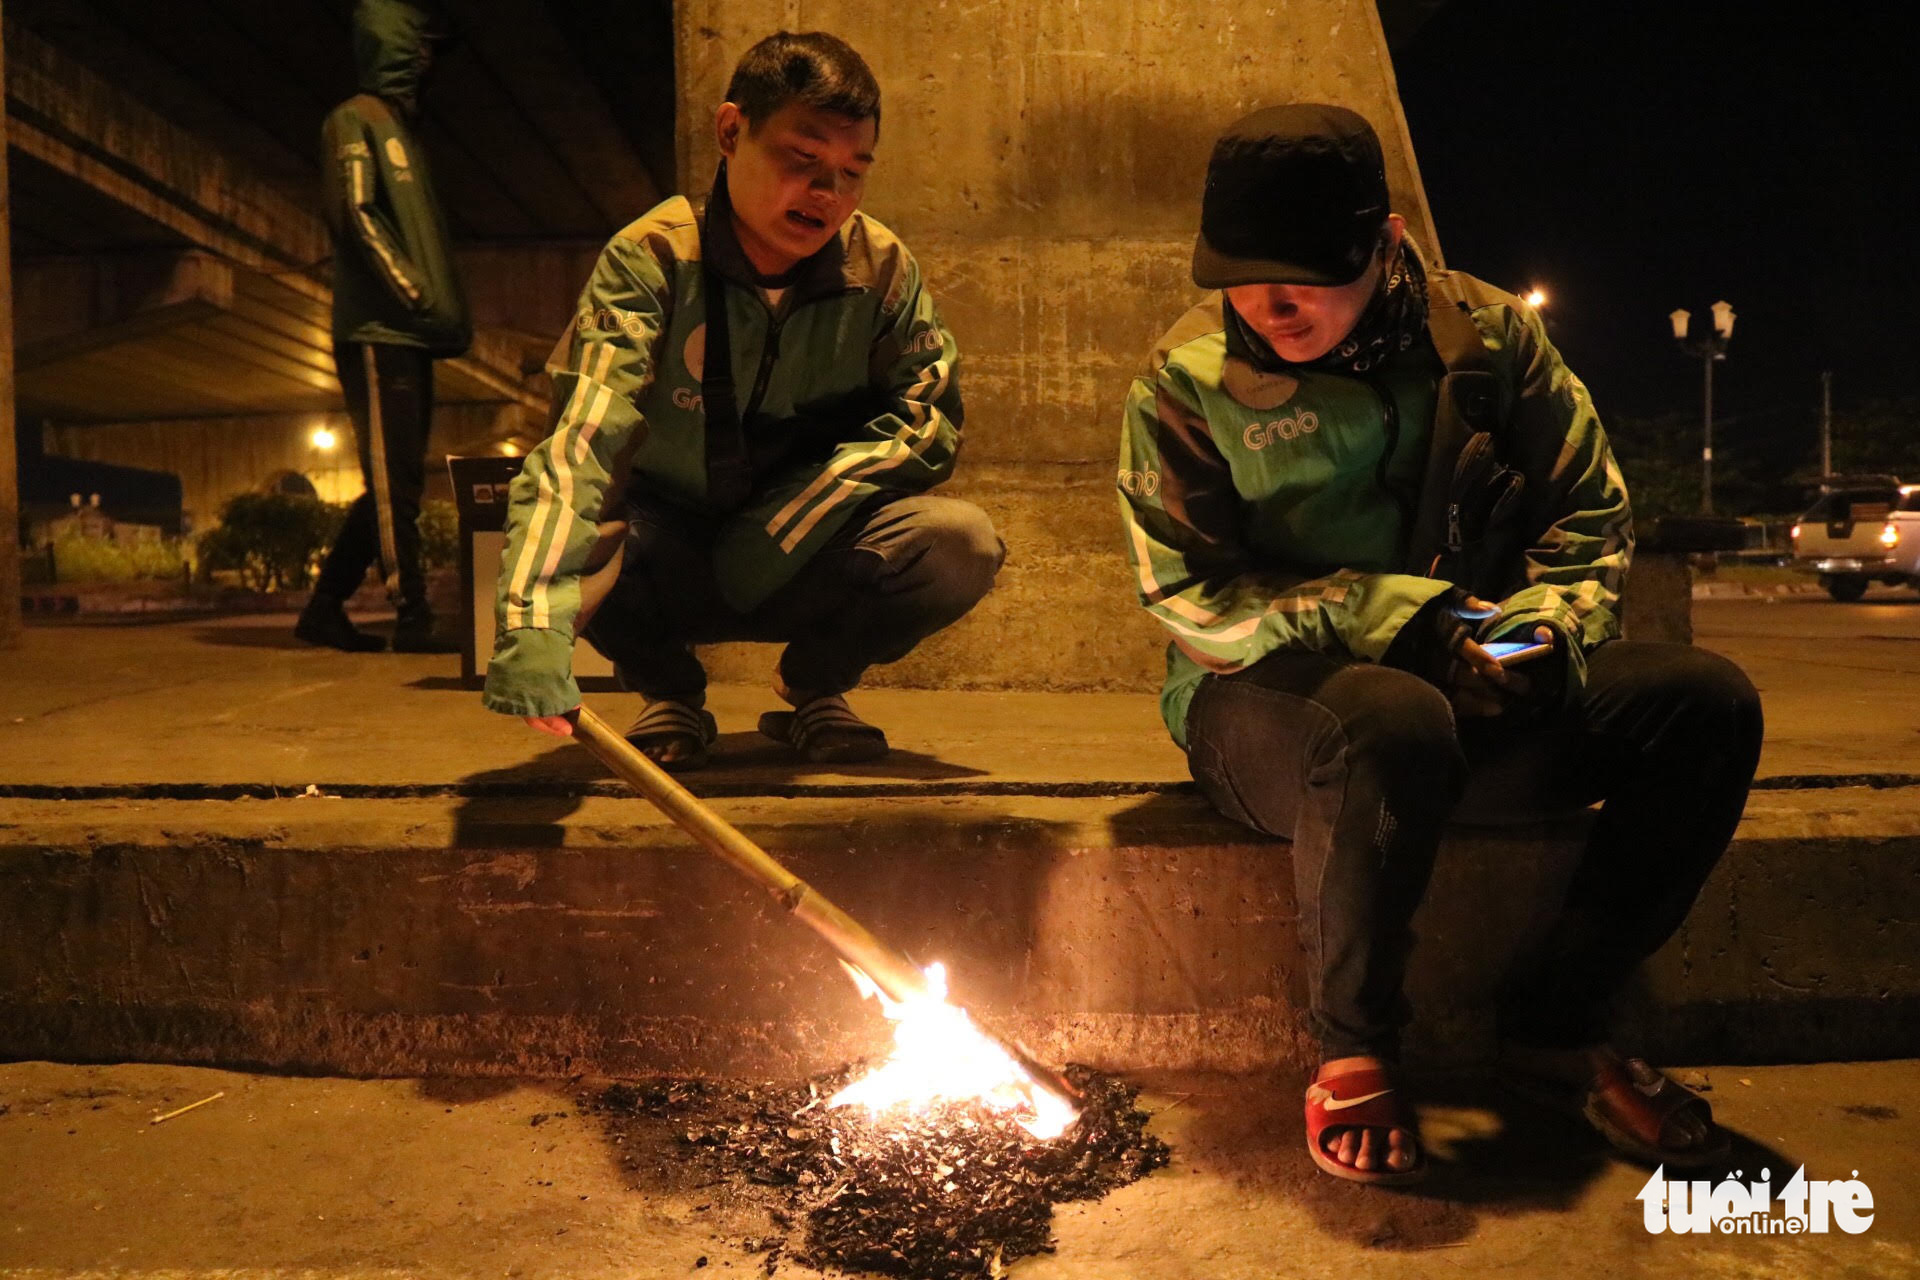 Two GrabBike drivers light a small fire to warm themselves under an overpass in Thu Duc District, Ho Chi Minh City. Photo: Hoang An / Tuoi Tre